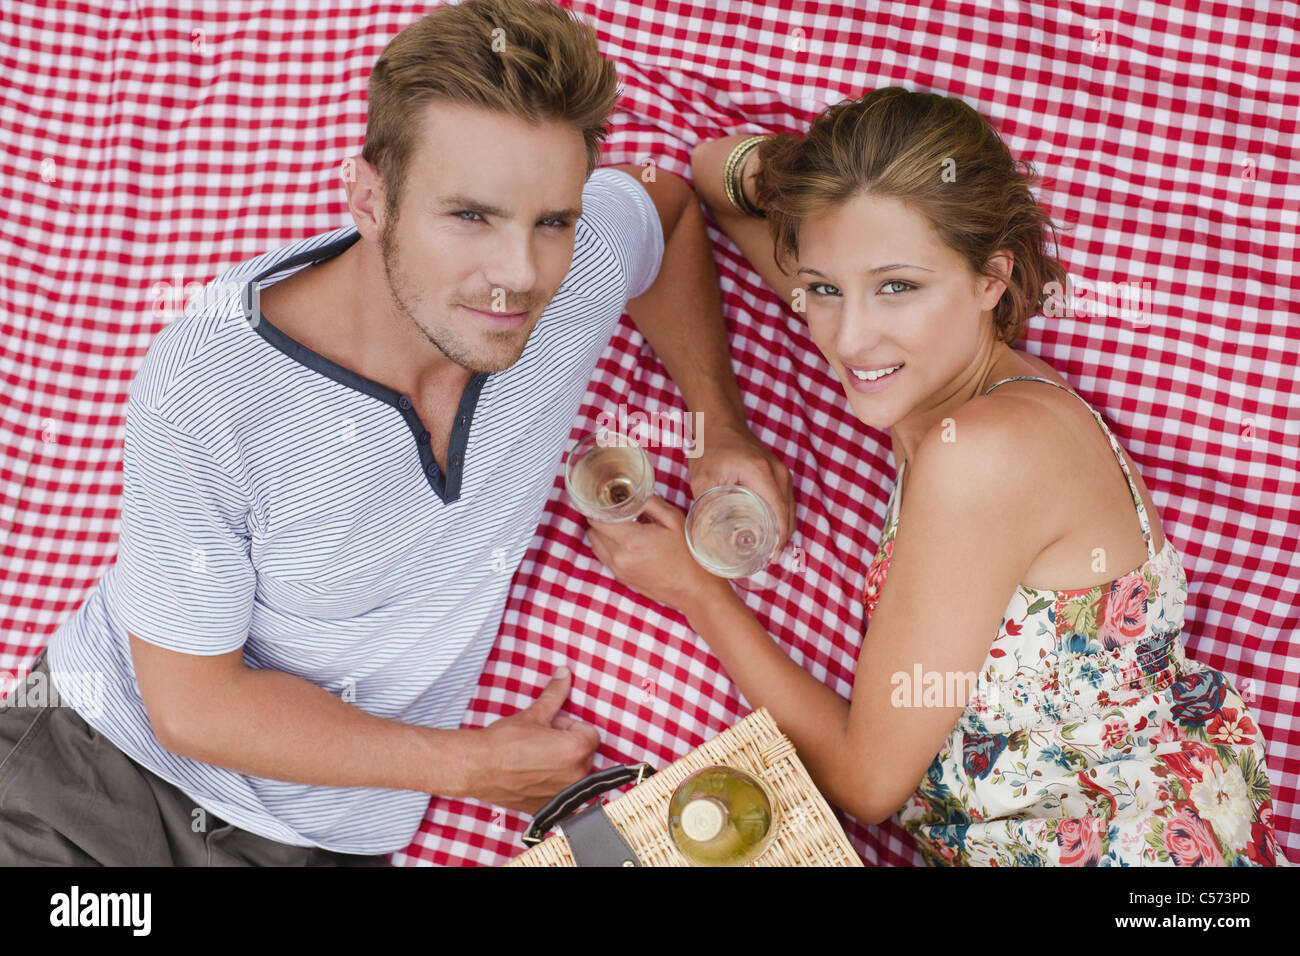 Couple picnicking together - Stock Image